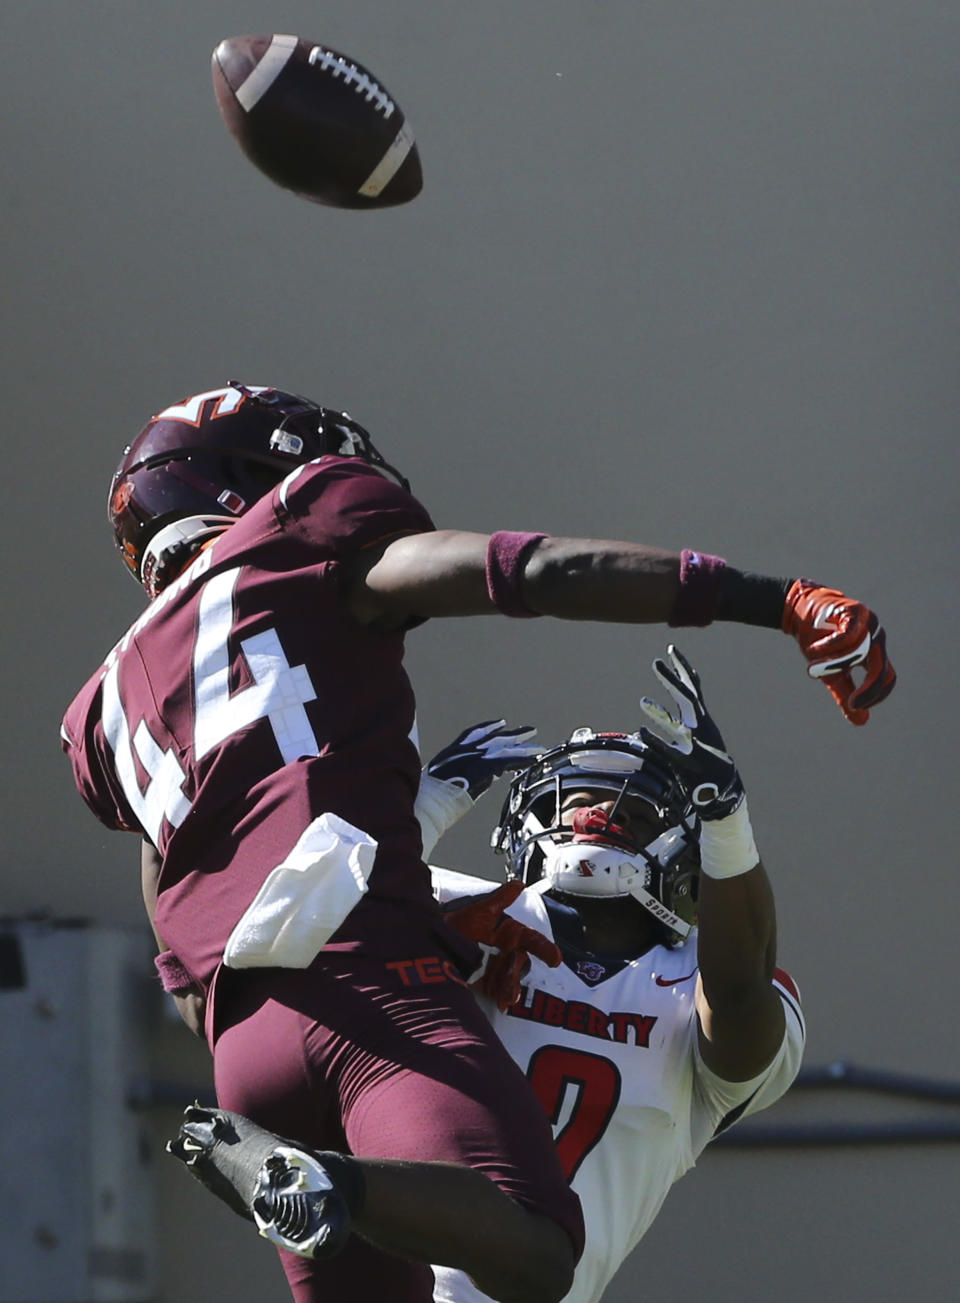 Virginia Tech's Dorian Strong breaks up a pass intended for Liberty wide receiver Kevin Shaa during the first half of an NCAA college football game, Saturday, Nov. 7 2020, in Blacksburg, Va. (Matt Gentry/The Roanoke Times via AP, Pool)